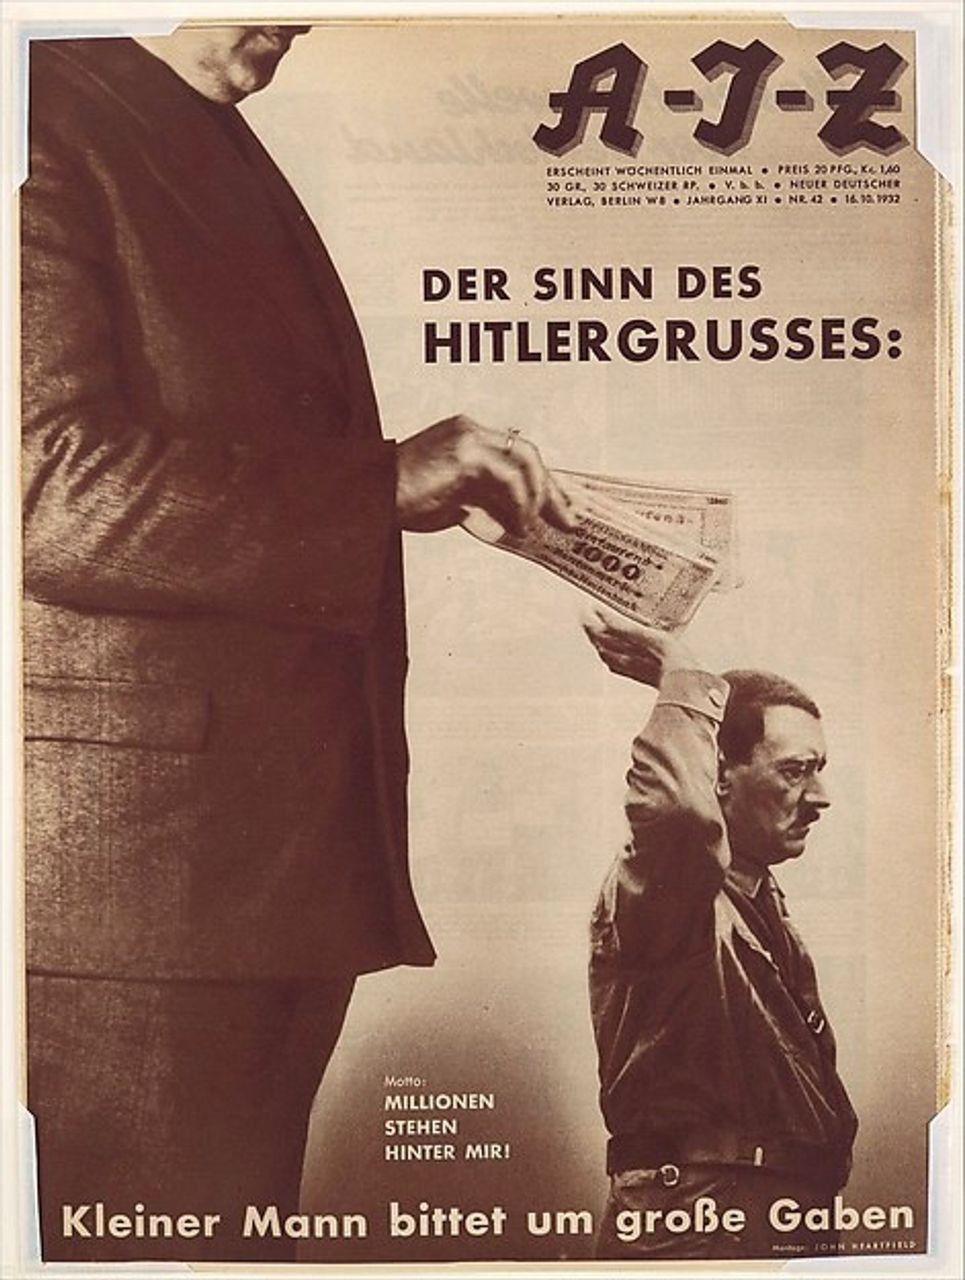 'The Real Meaning of the Hitler Salute: Millions Stand Behind Me––Little Man Asking for Big Donations,' October 1932